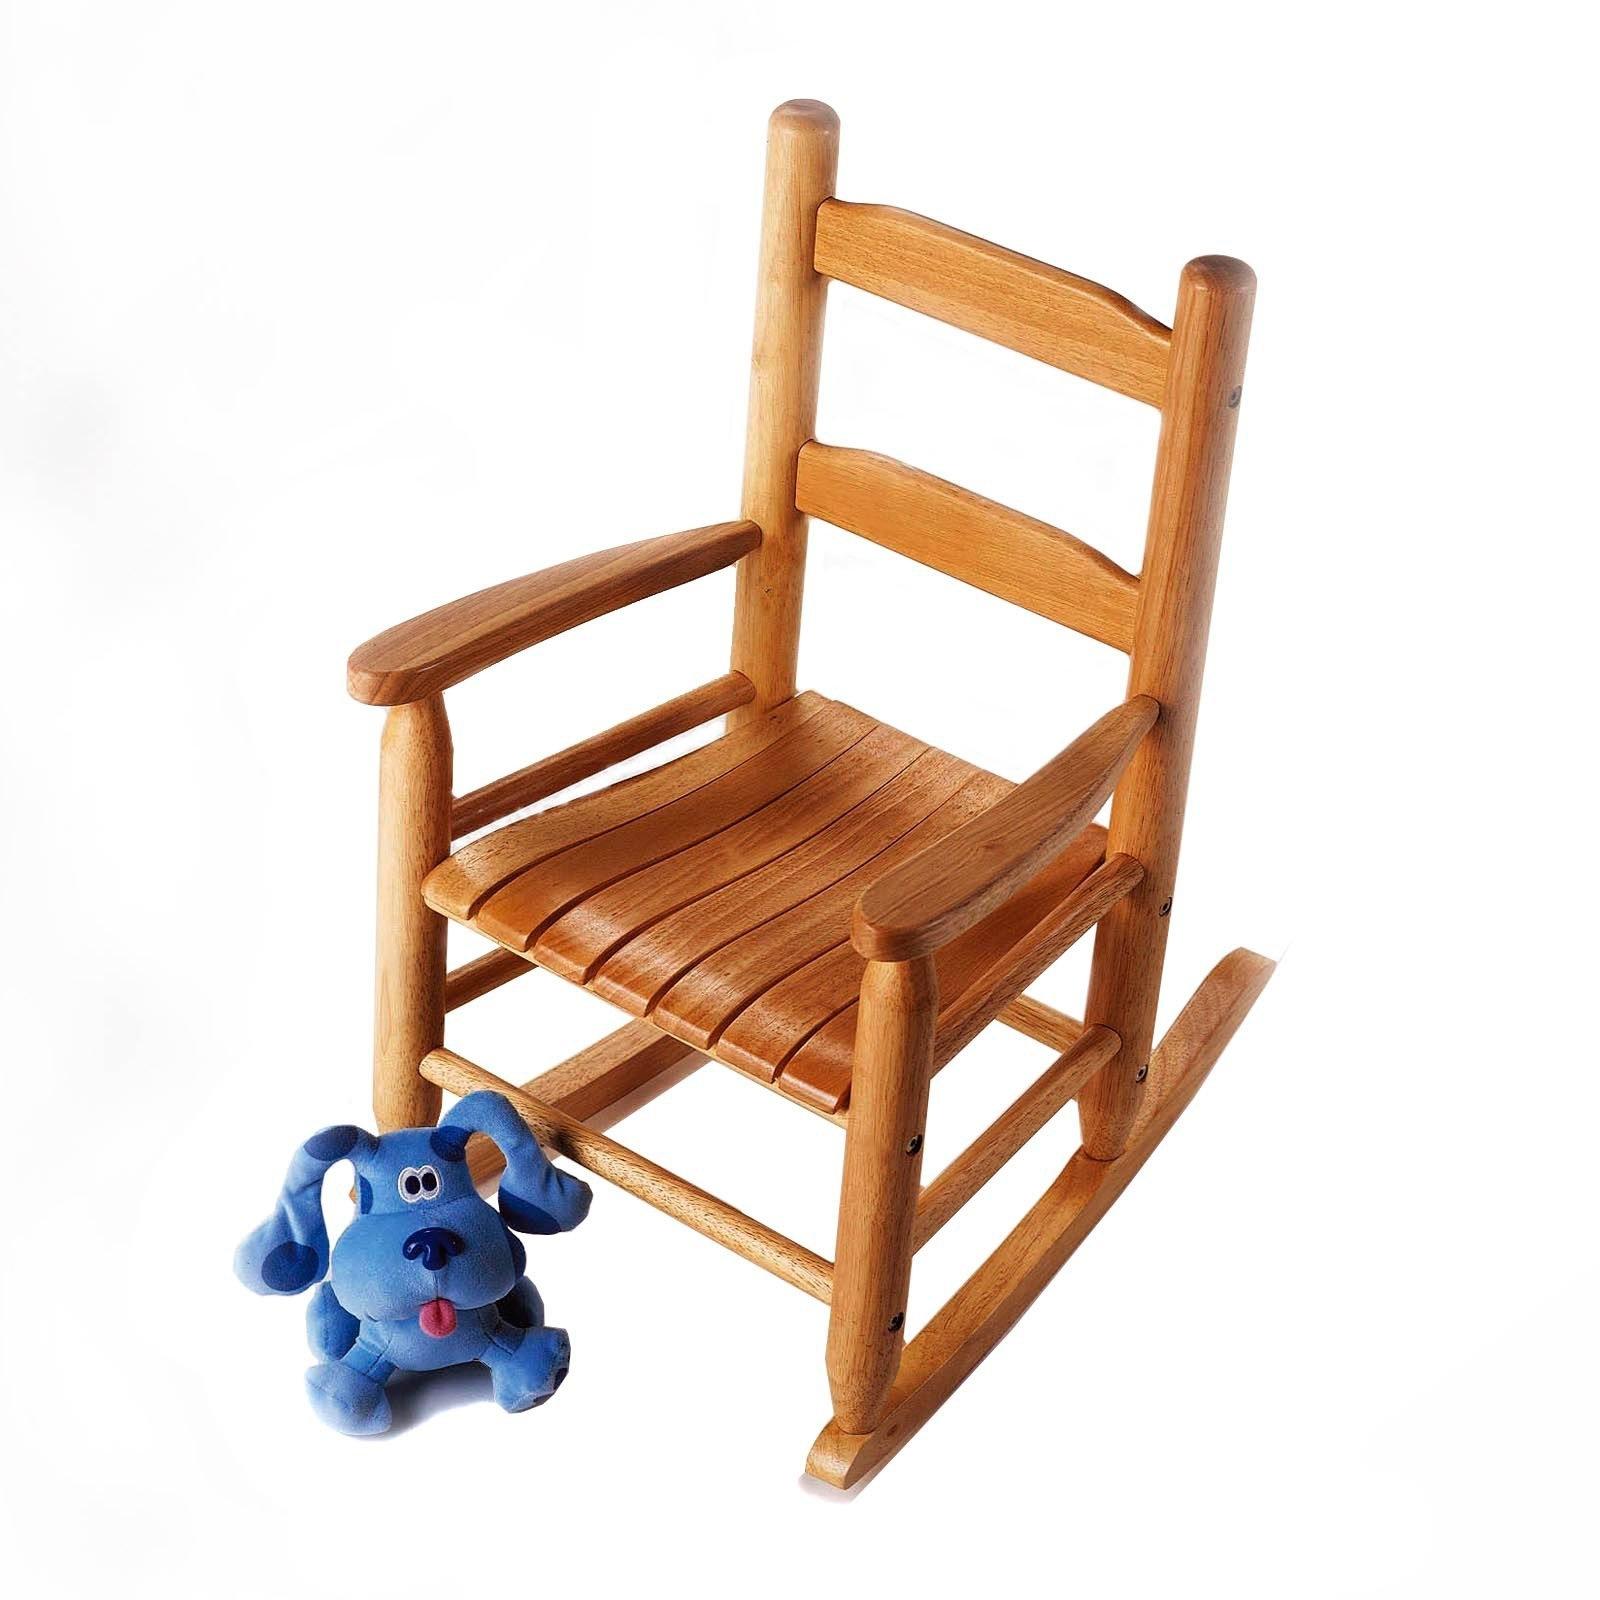 Rocking Chairs For Toddlers With Regard To Newest Elegant Toddler Rocking Chair Wood F96X On Most Luxury Interior (View 15 of 20)